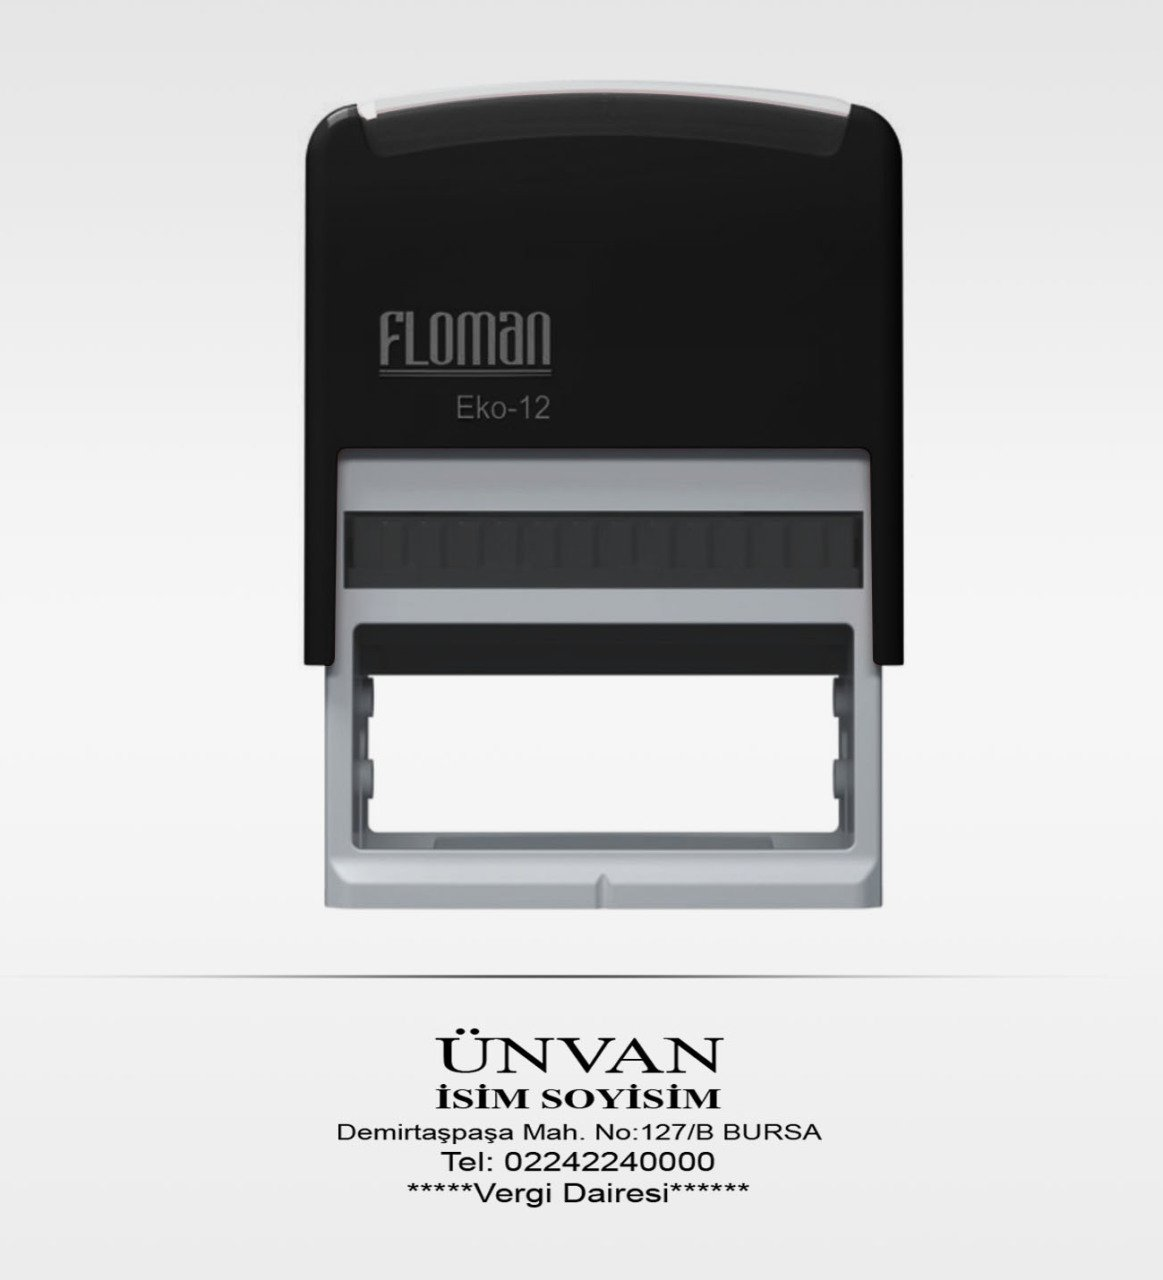 Personalized Floman Automatic Black Stamp